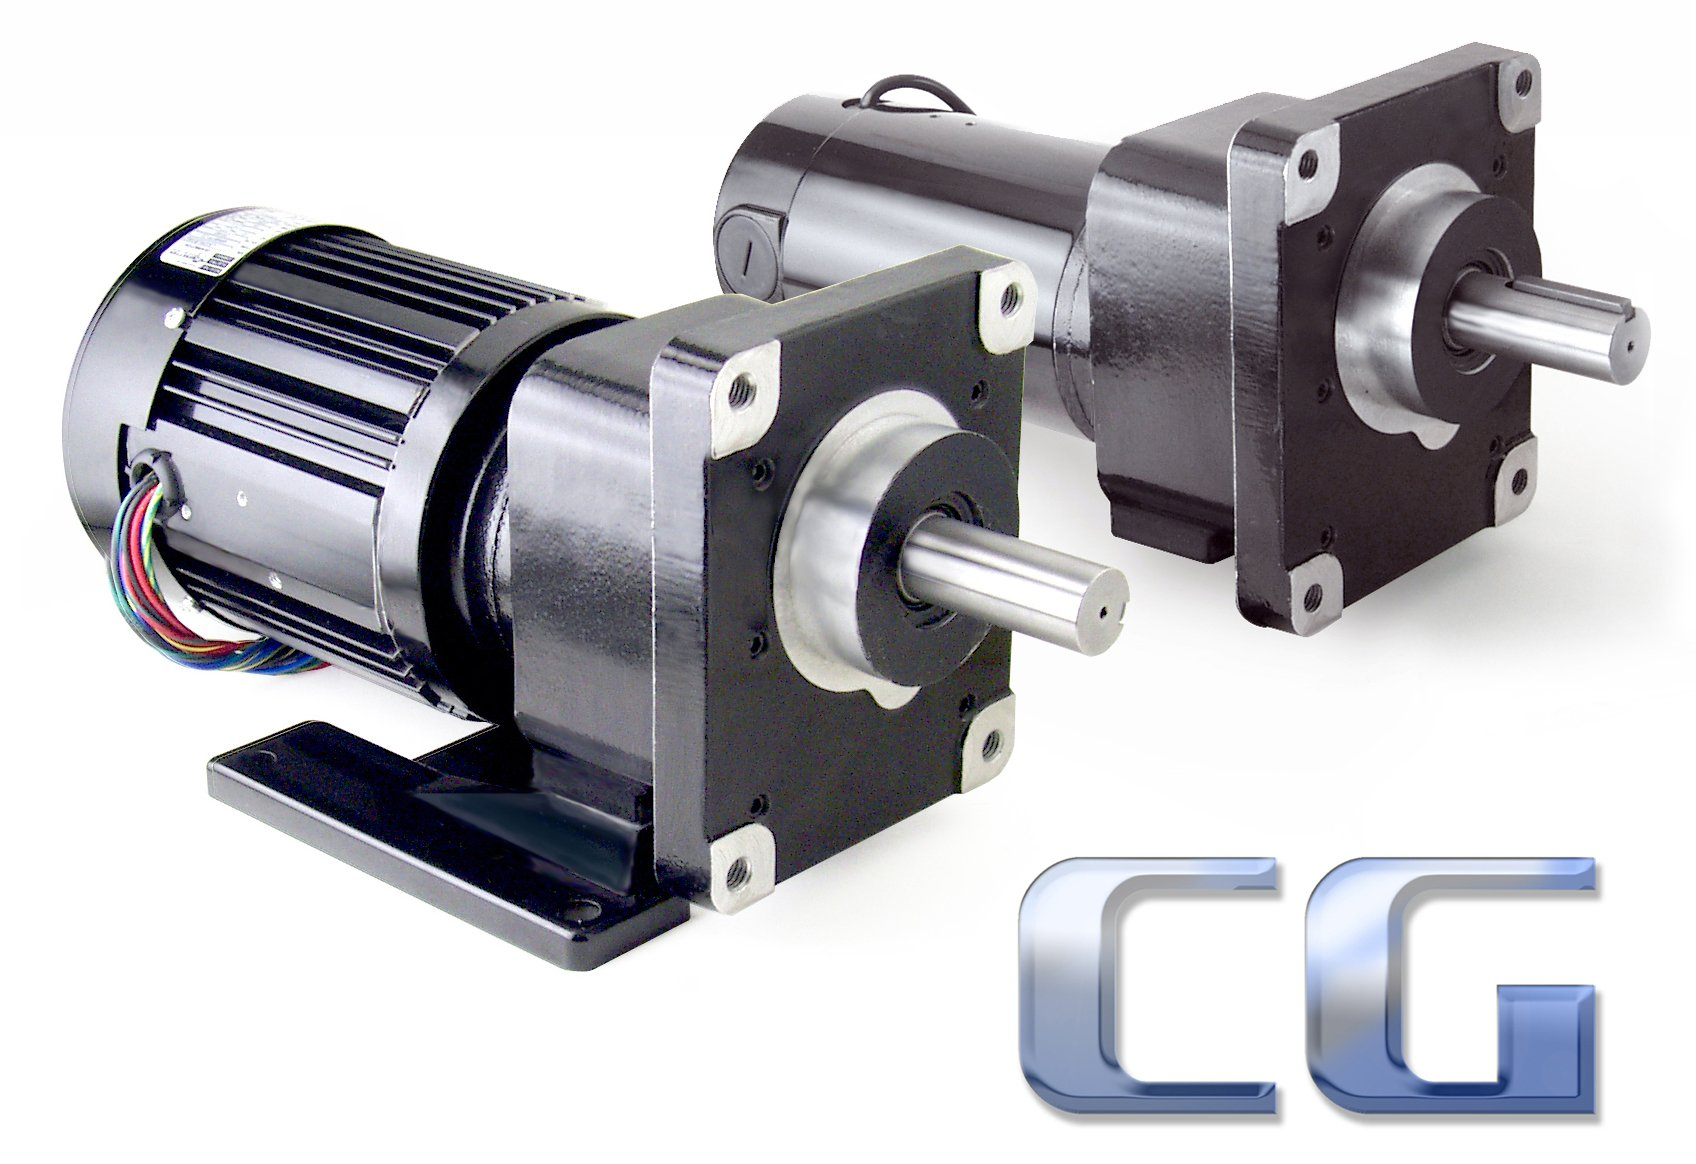 Upgraded and Expanded CG Gearmotor Selection